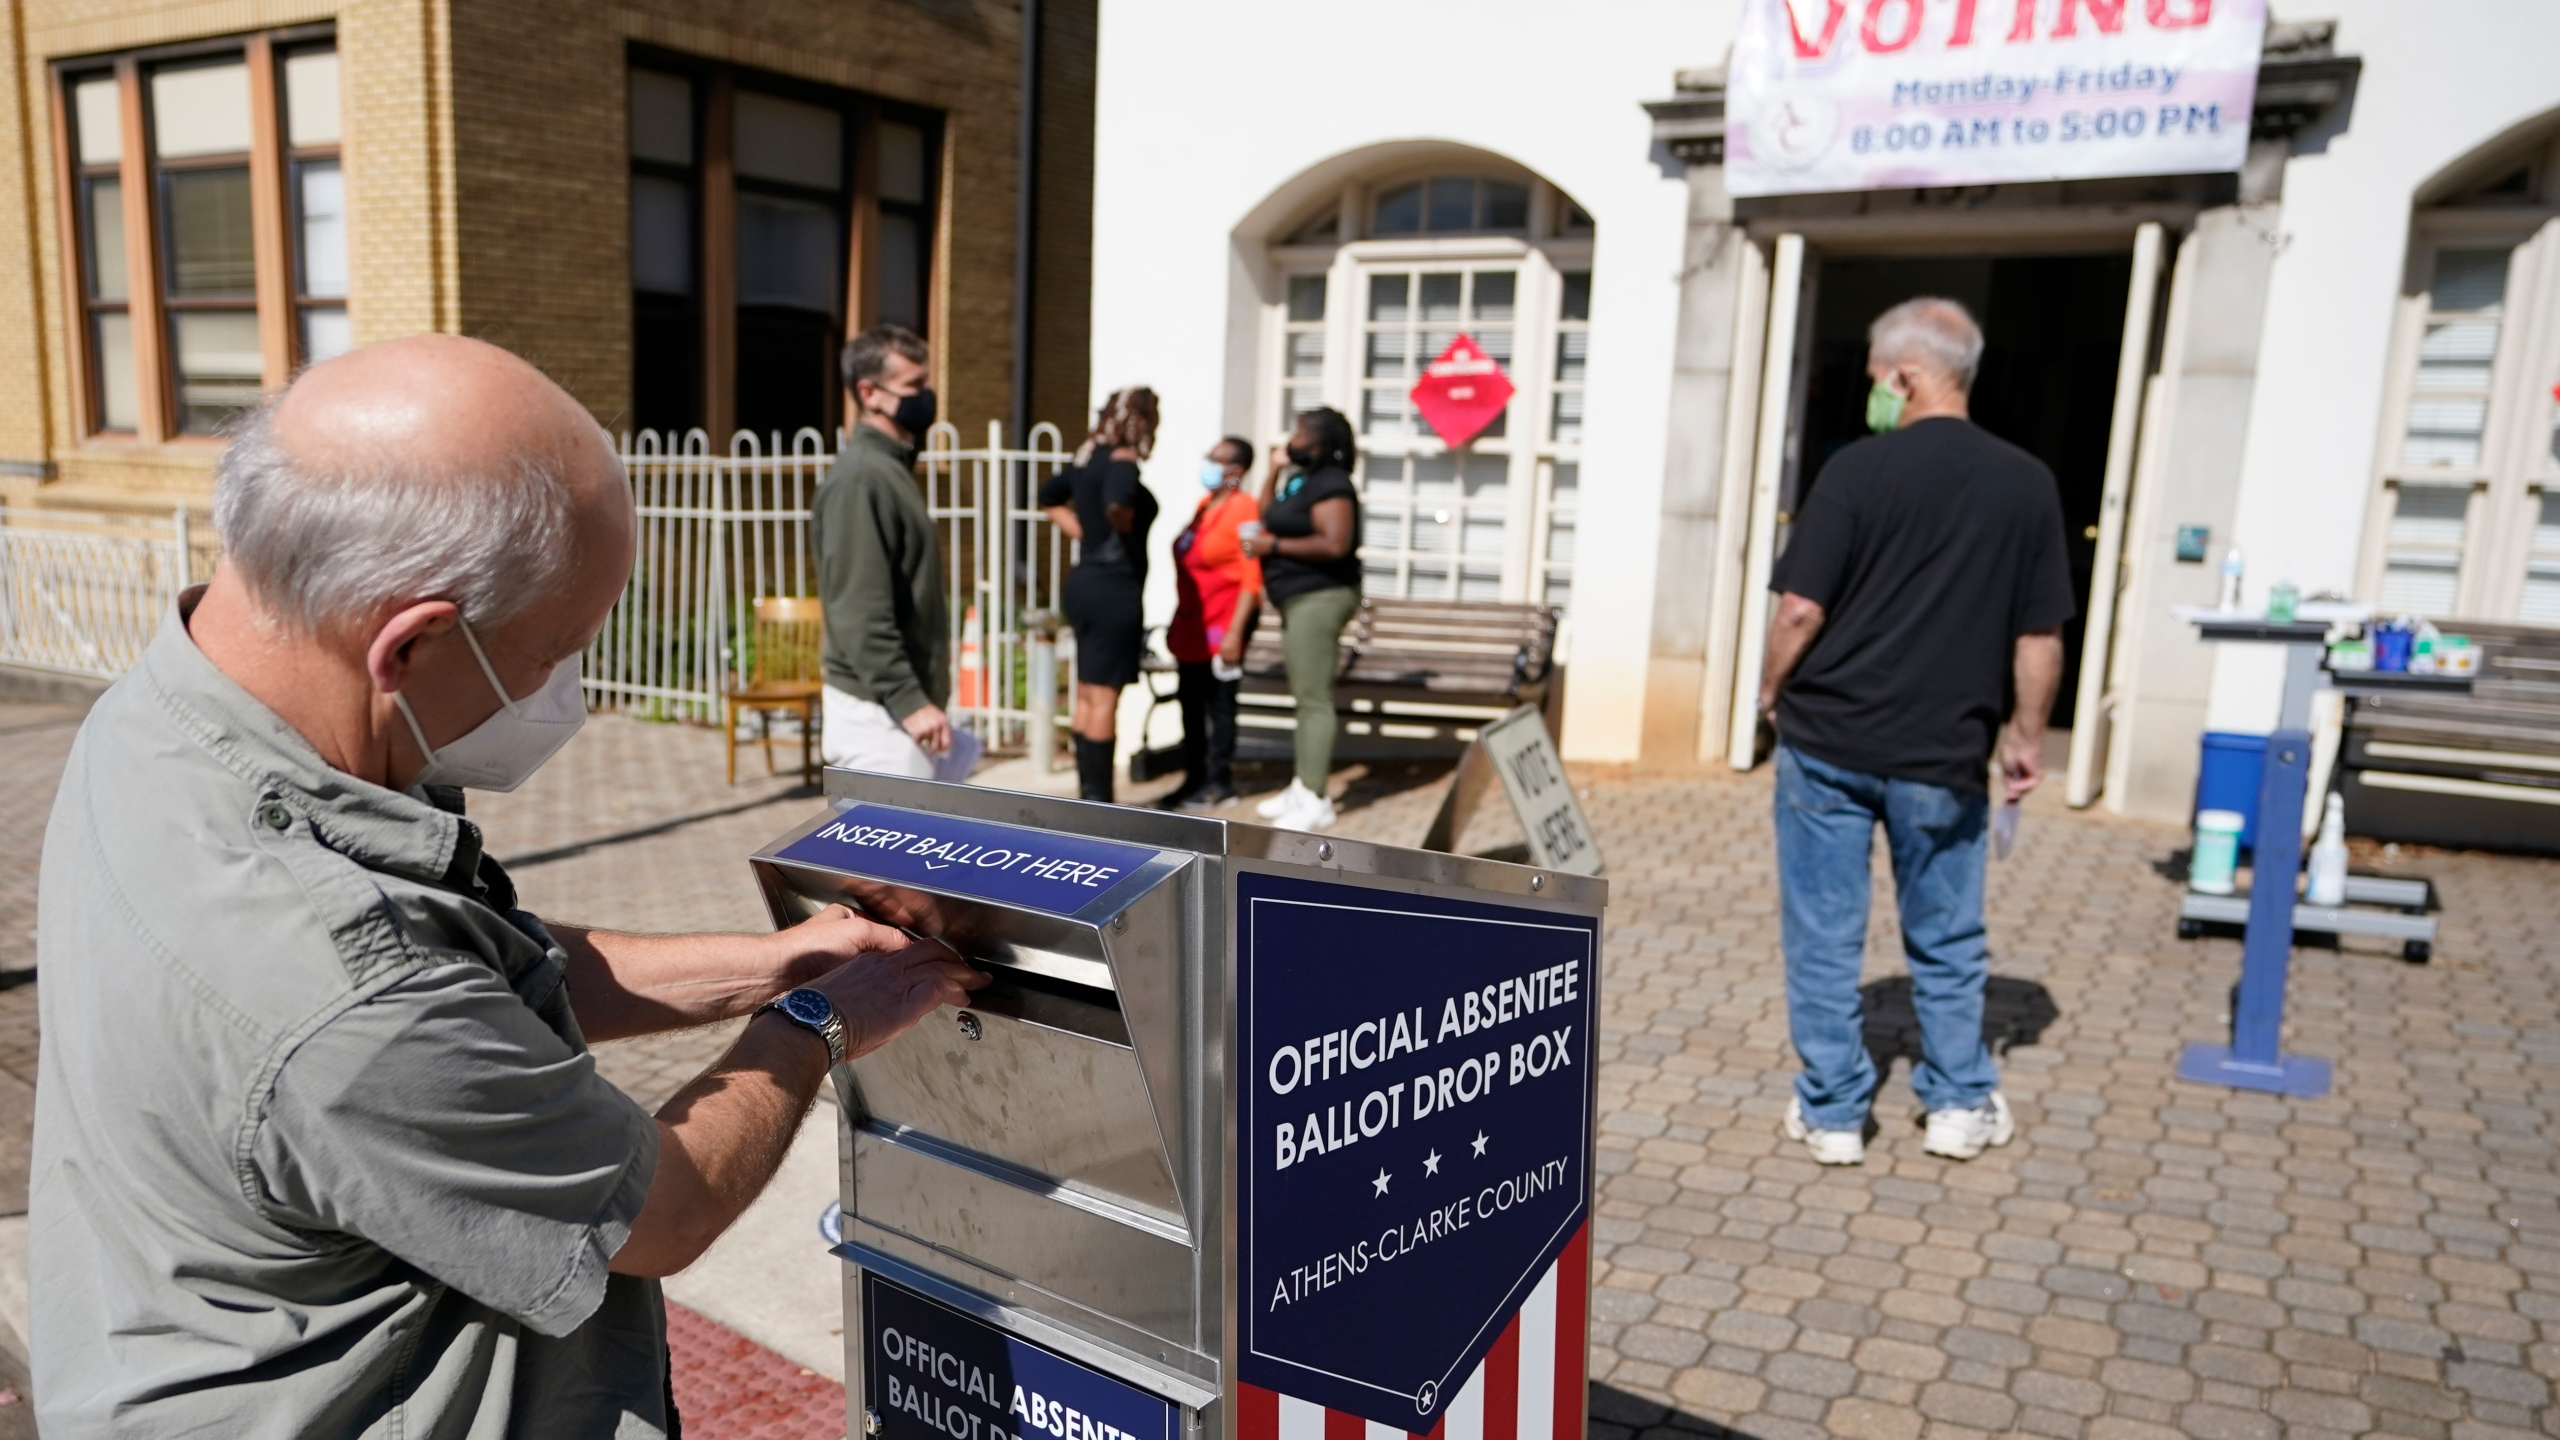 In this Monday, Oct. 19, 2020 file photo, a voter submits a ballot in an official drop box during early voting in Athens, Ga. Ballot drop boxes were enormously popular during the 2020 election, with few problems reported. Yet they have drawn the attention of Republican lawmakers in key states who say security concerns warrant new restrictions. (AP Photo/John Bazemore, File)